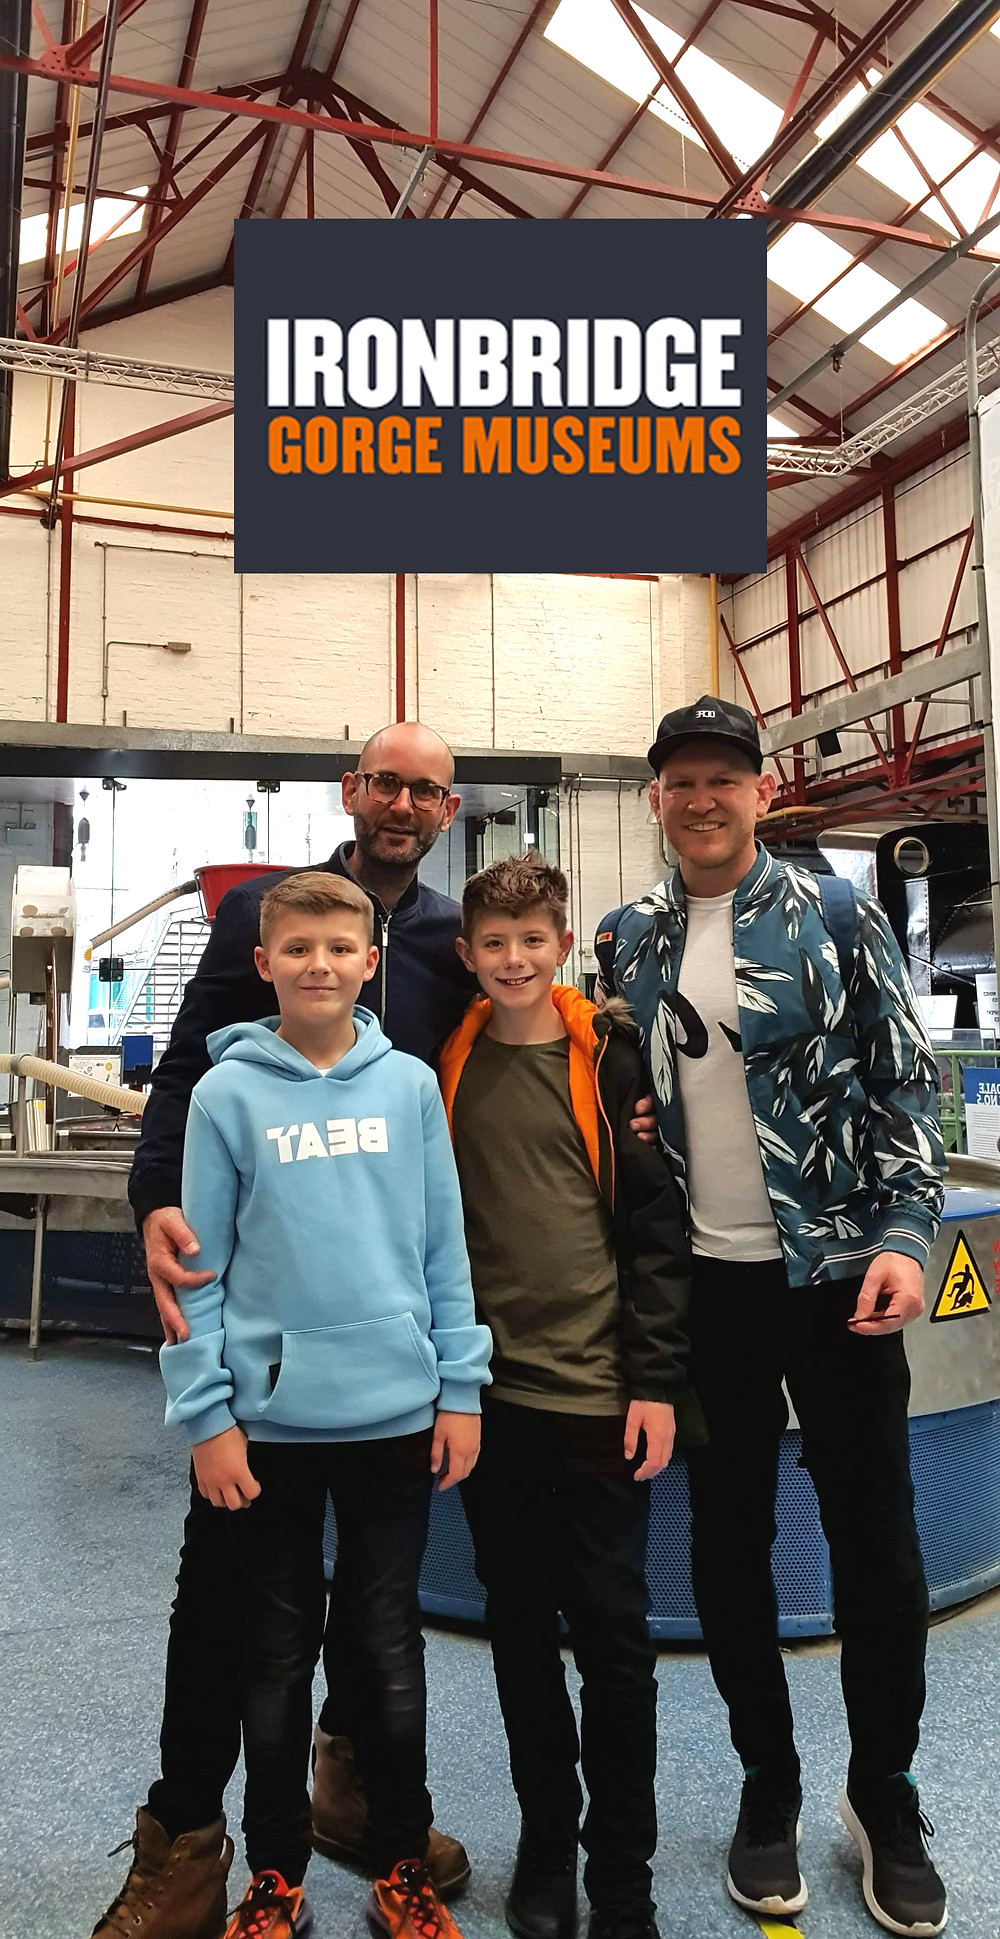 Daddy & Dad and boys at Enginuity science museum at Ironbridge Gorge